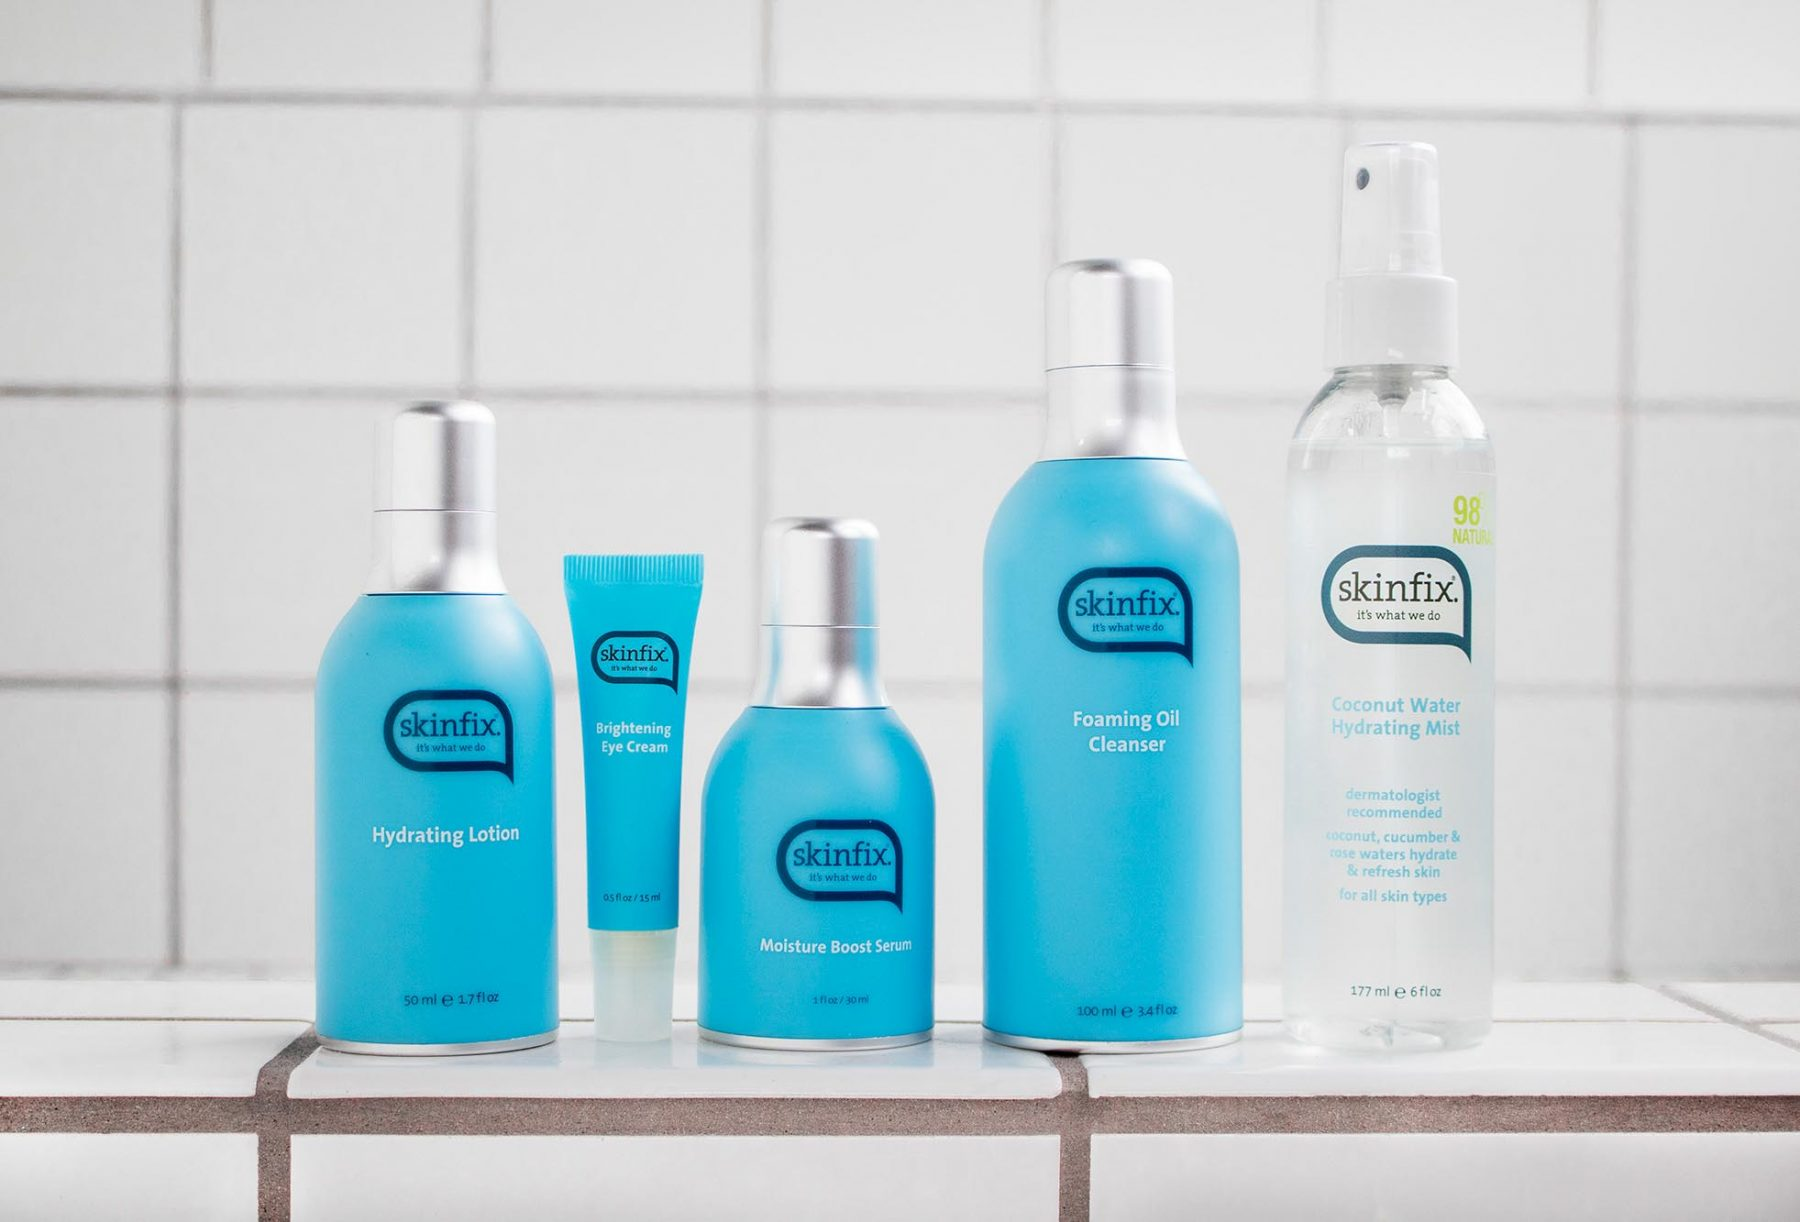 Skinfix-skincare-products